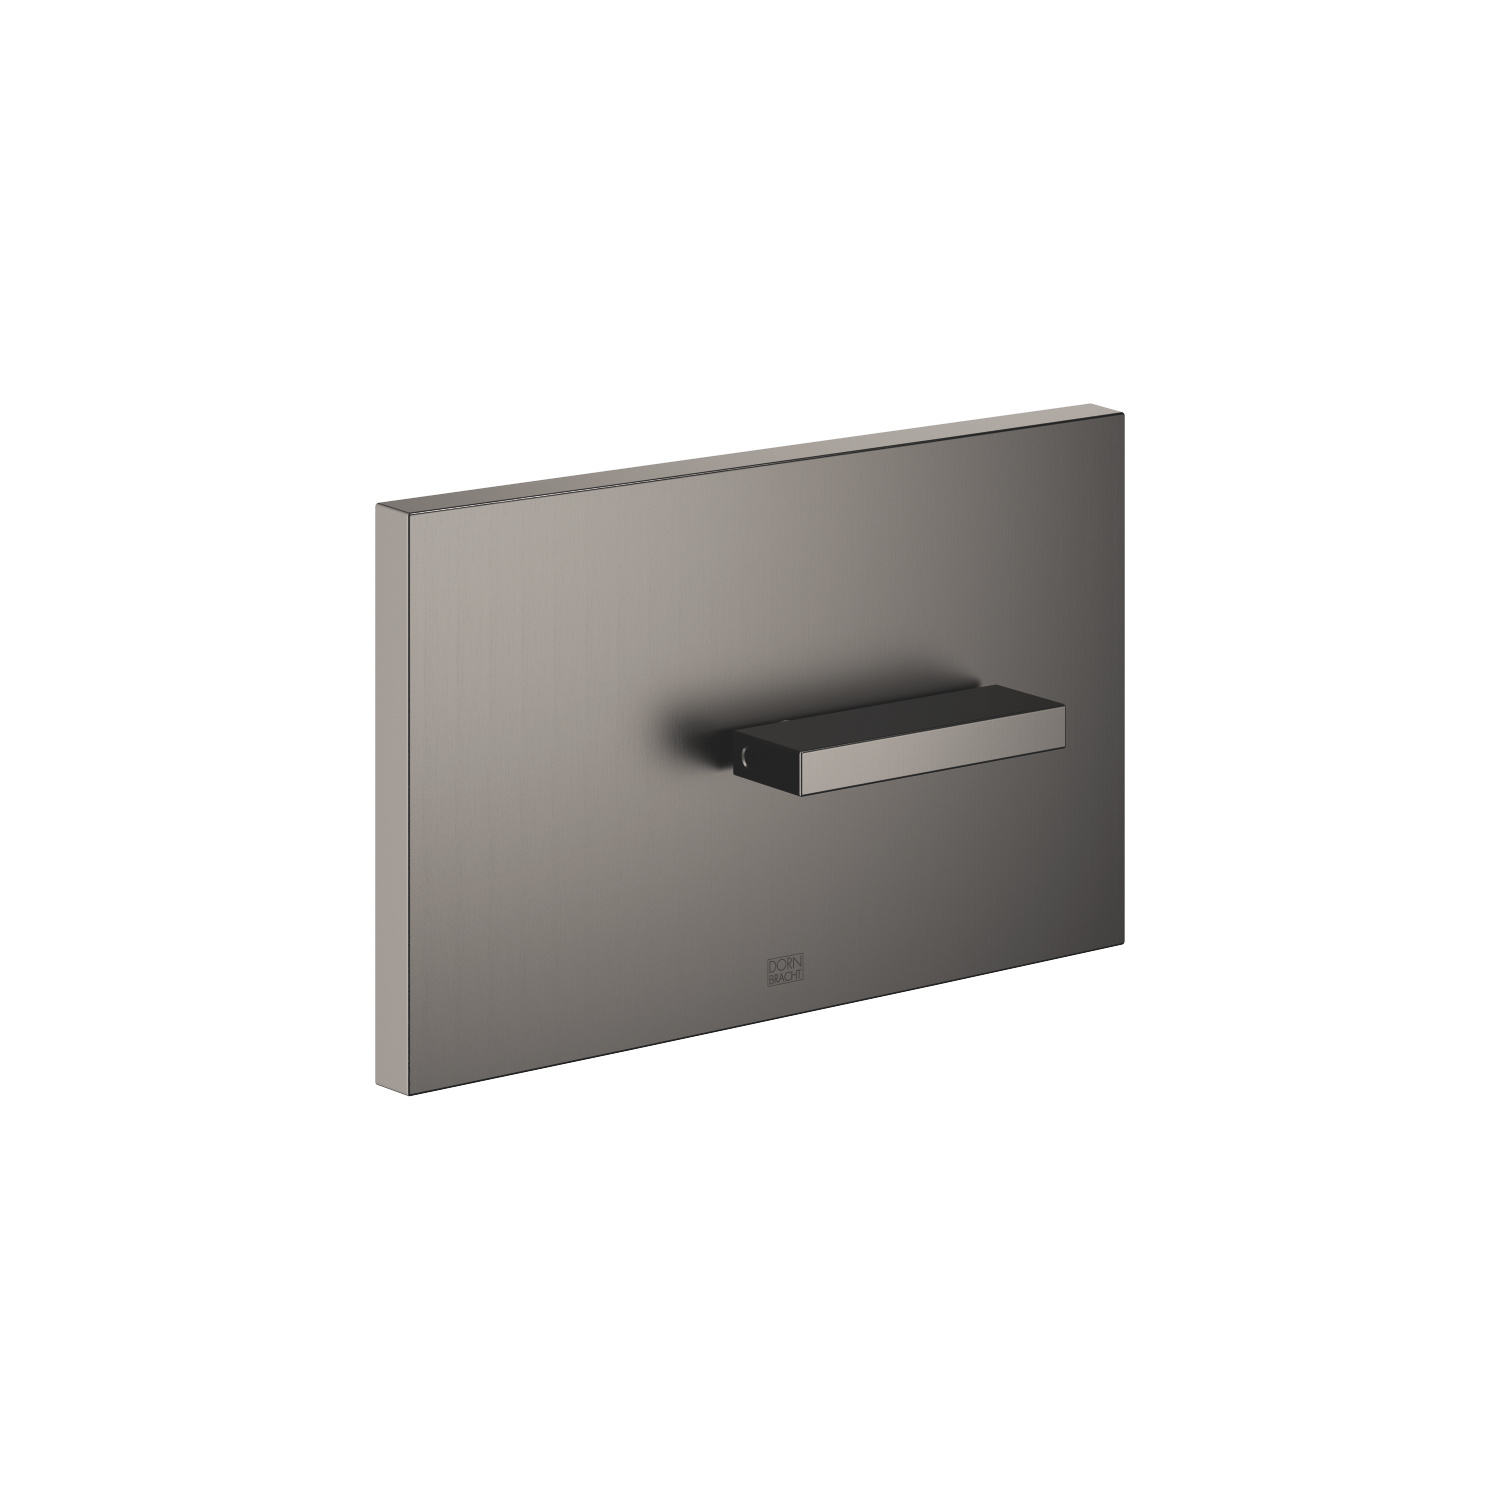 Cover plate for the concealed WC cistern made by TeCe - Dark Platinum matt